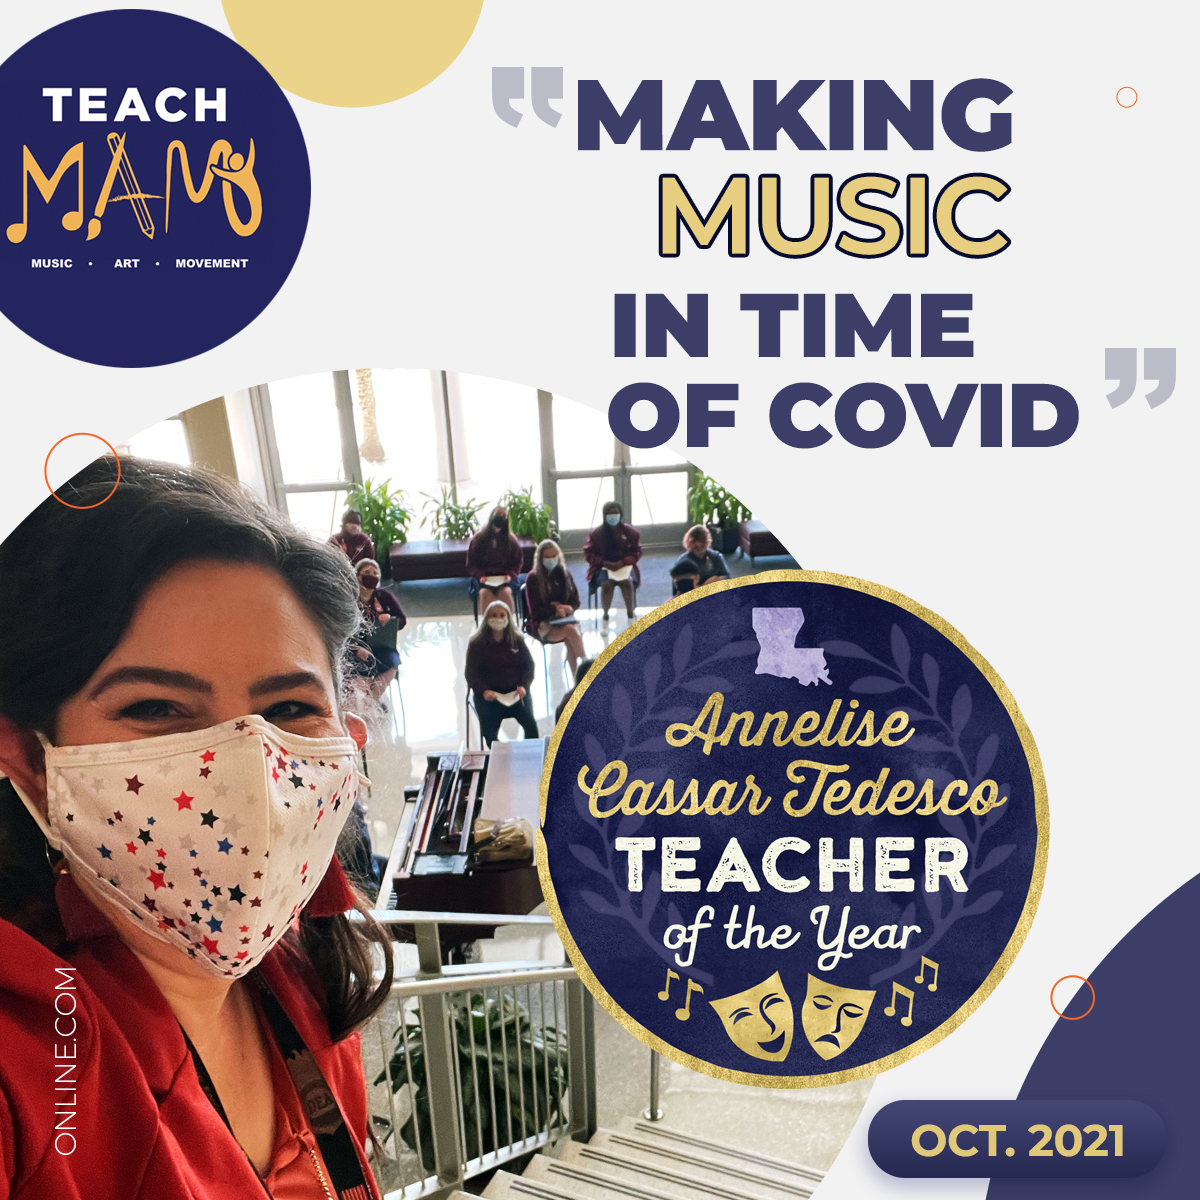 Teach MAM – Making Music in Time of COVID